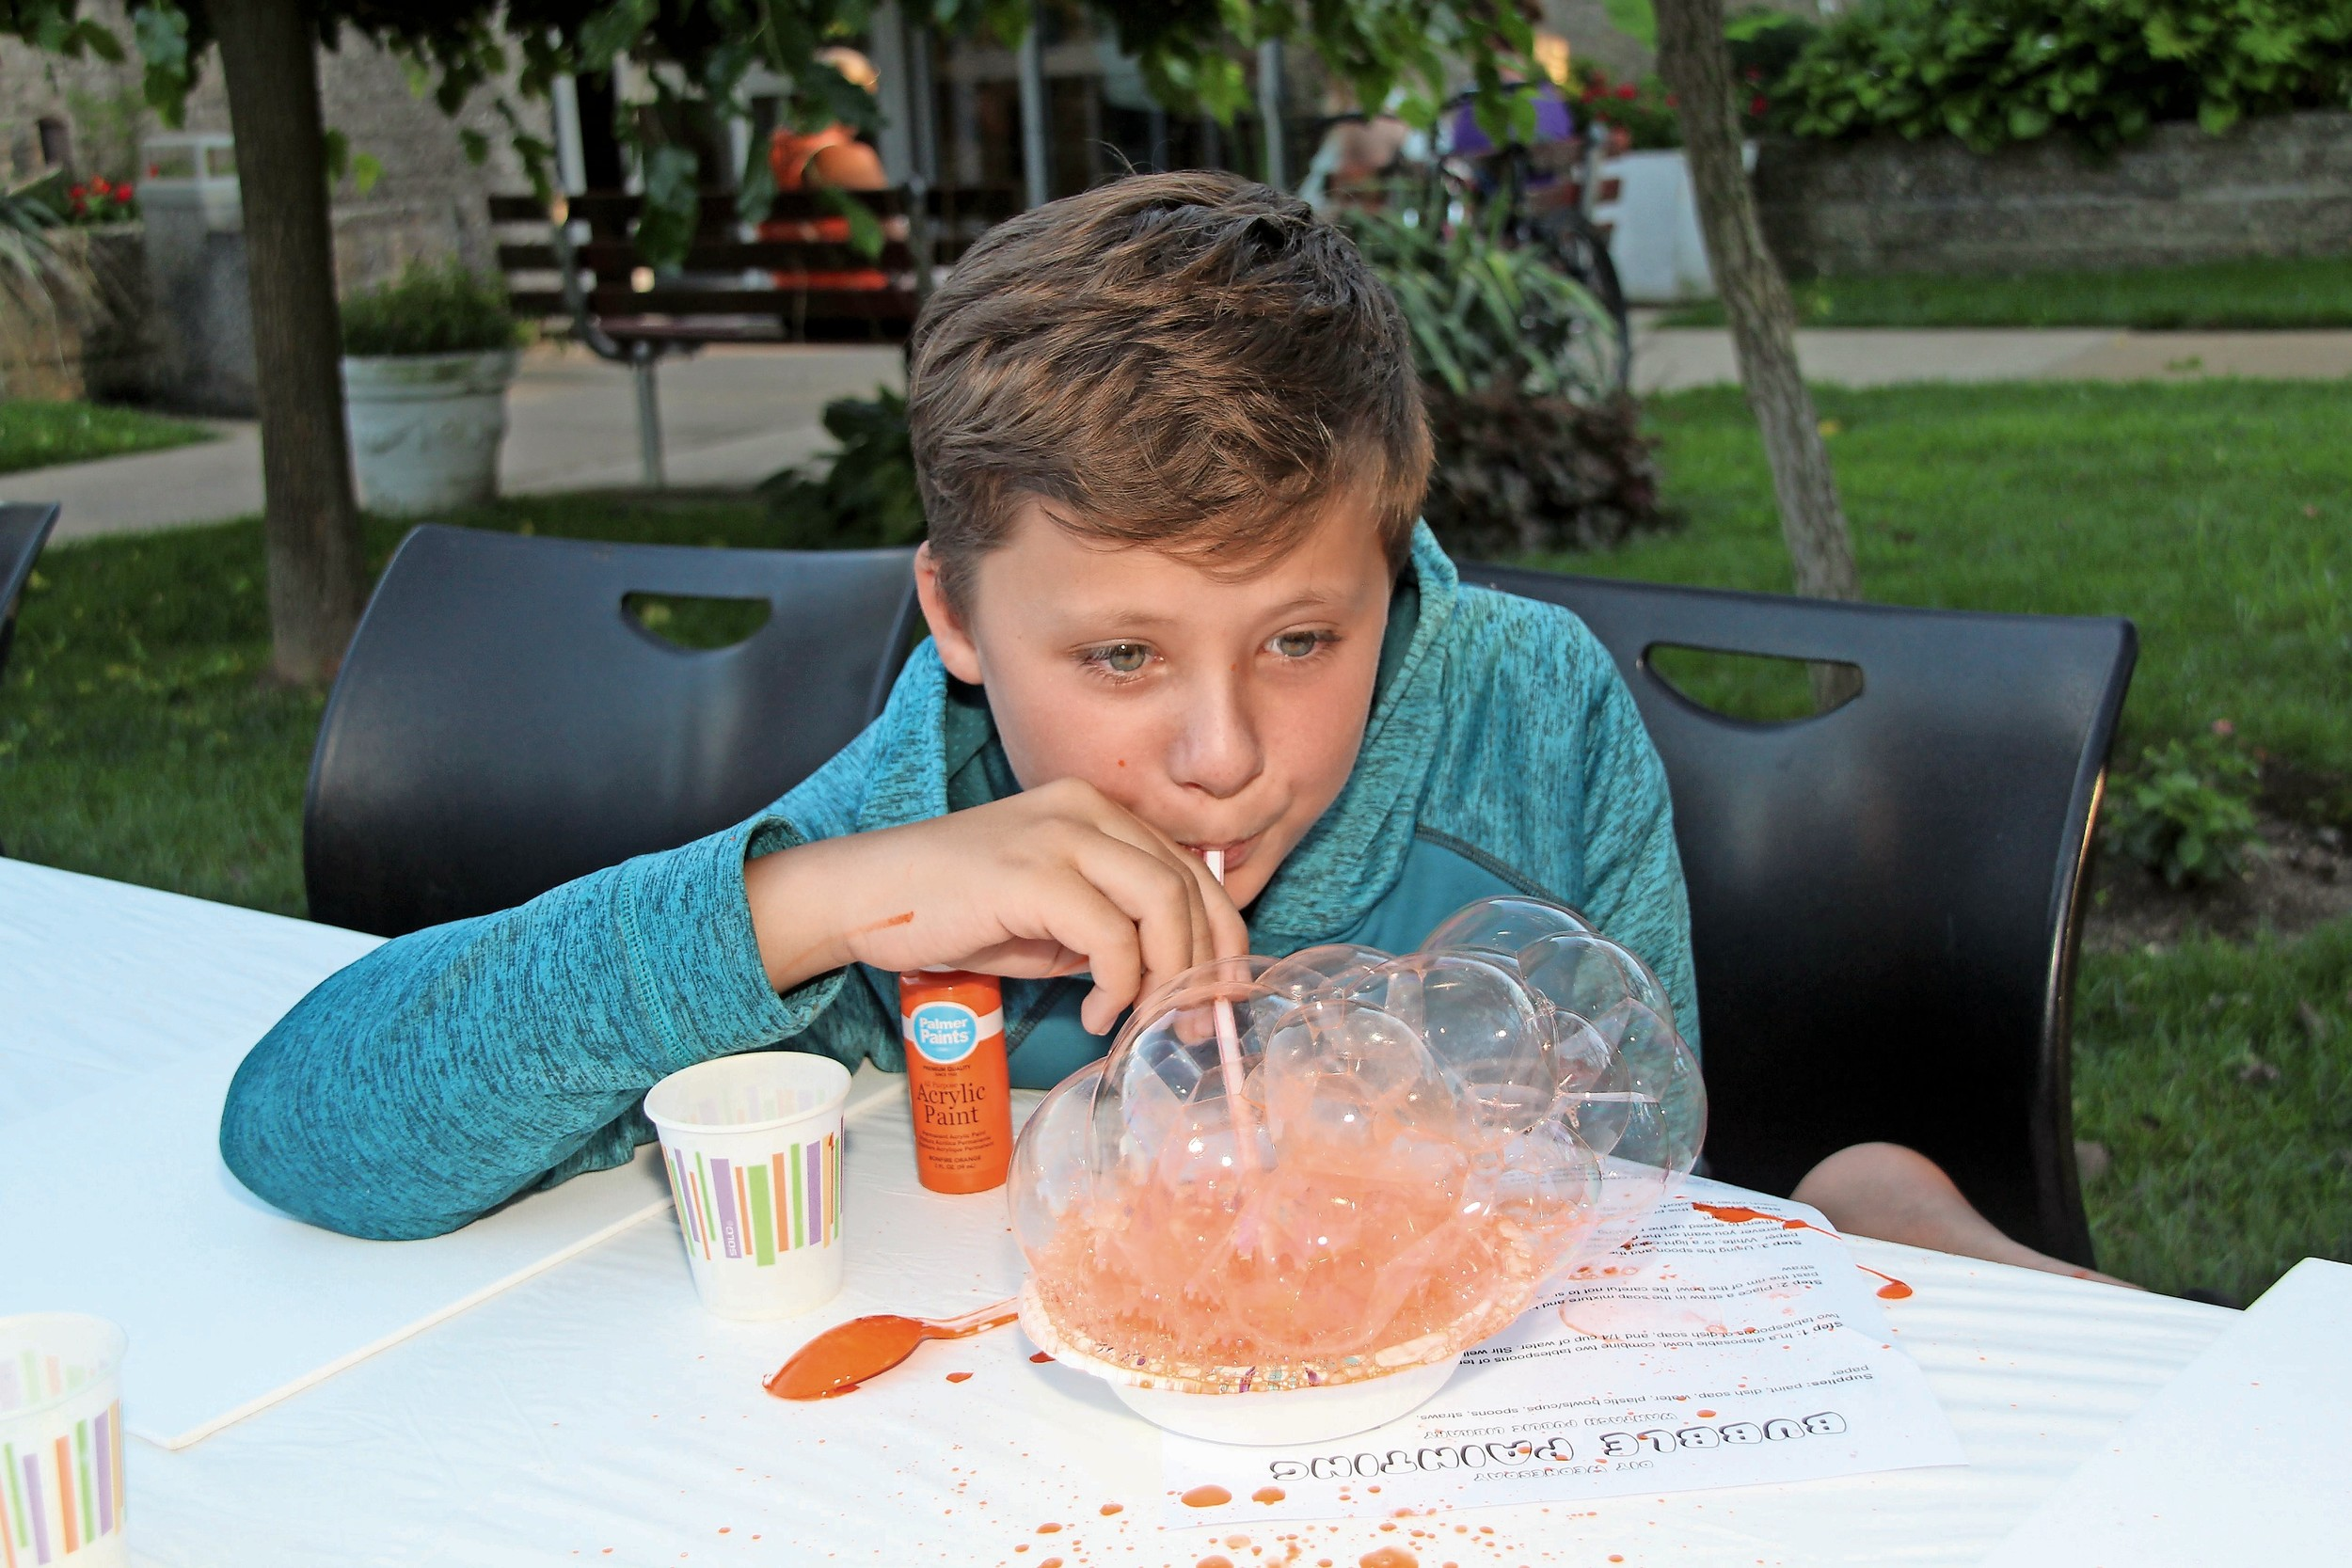 John Haubeil, 11, created a bubble painting at the Wantagh Public Library on Aug. 23.